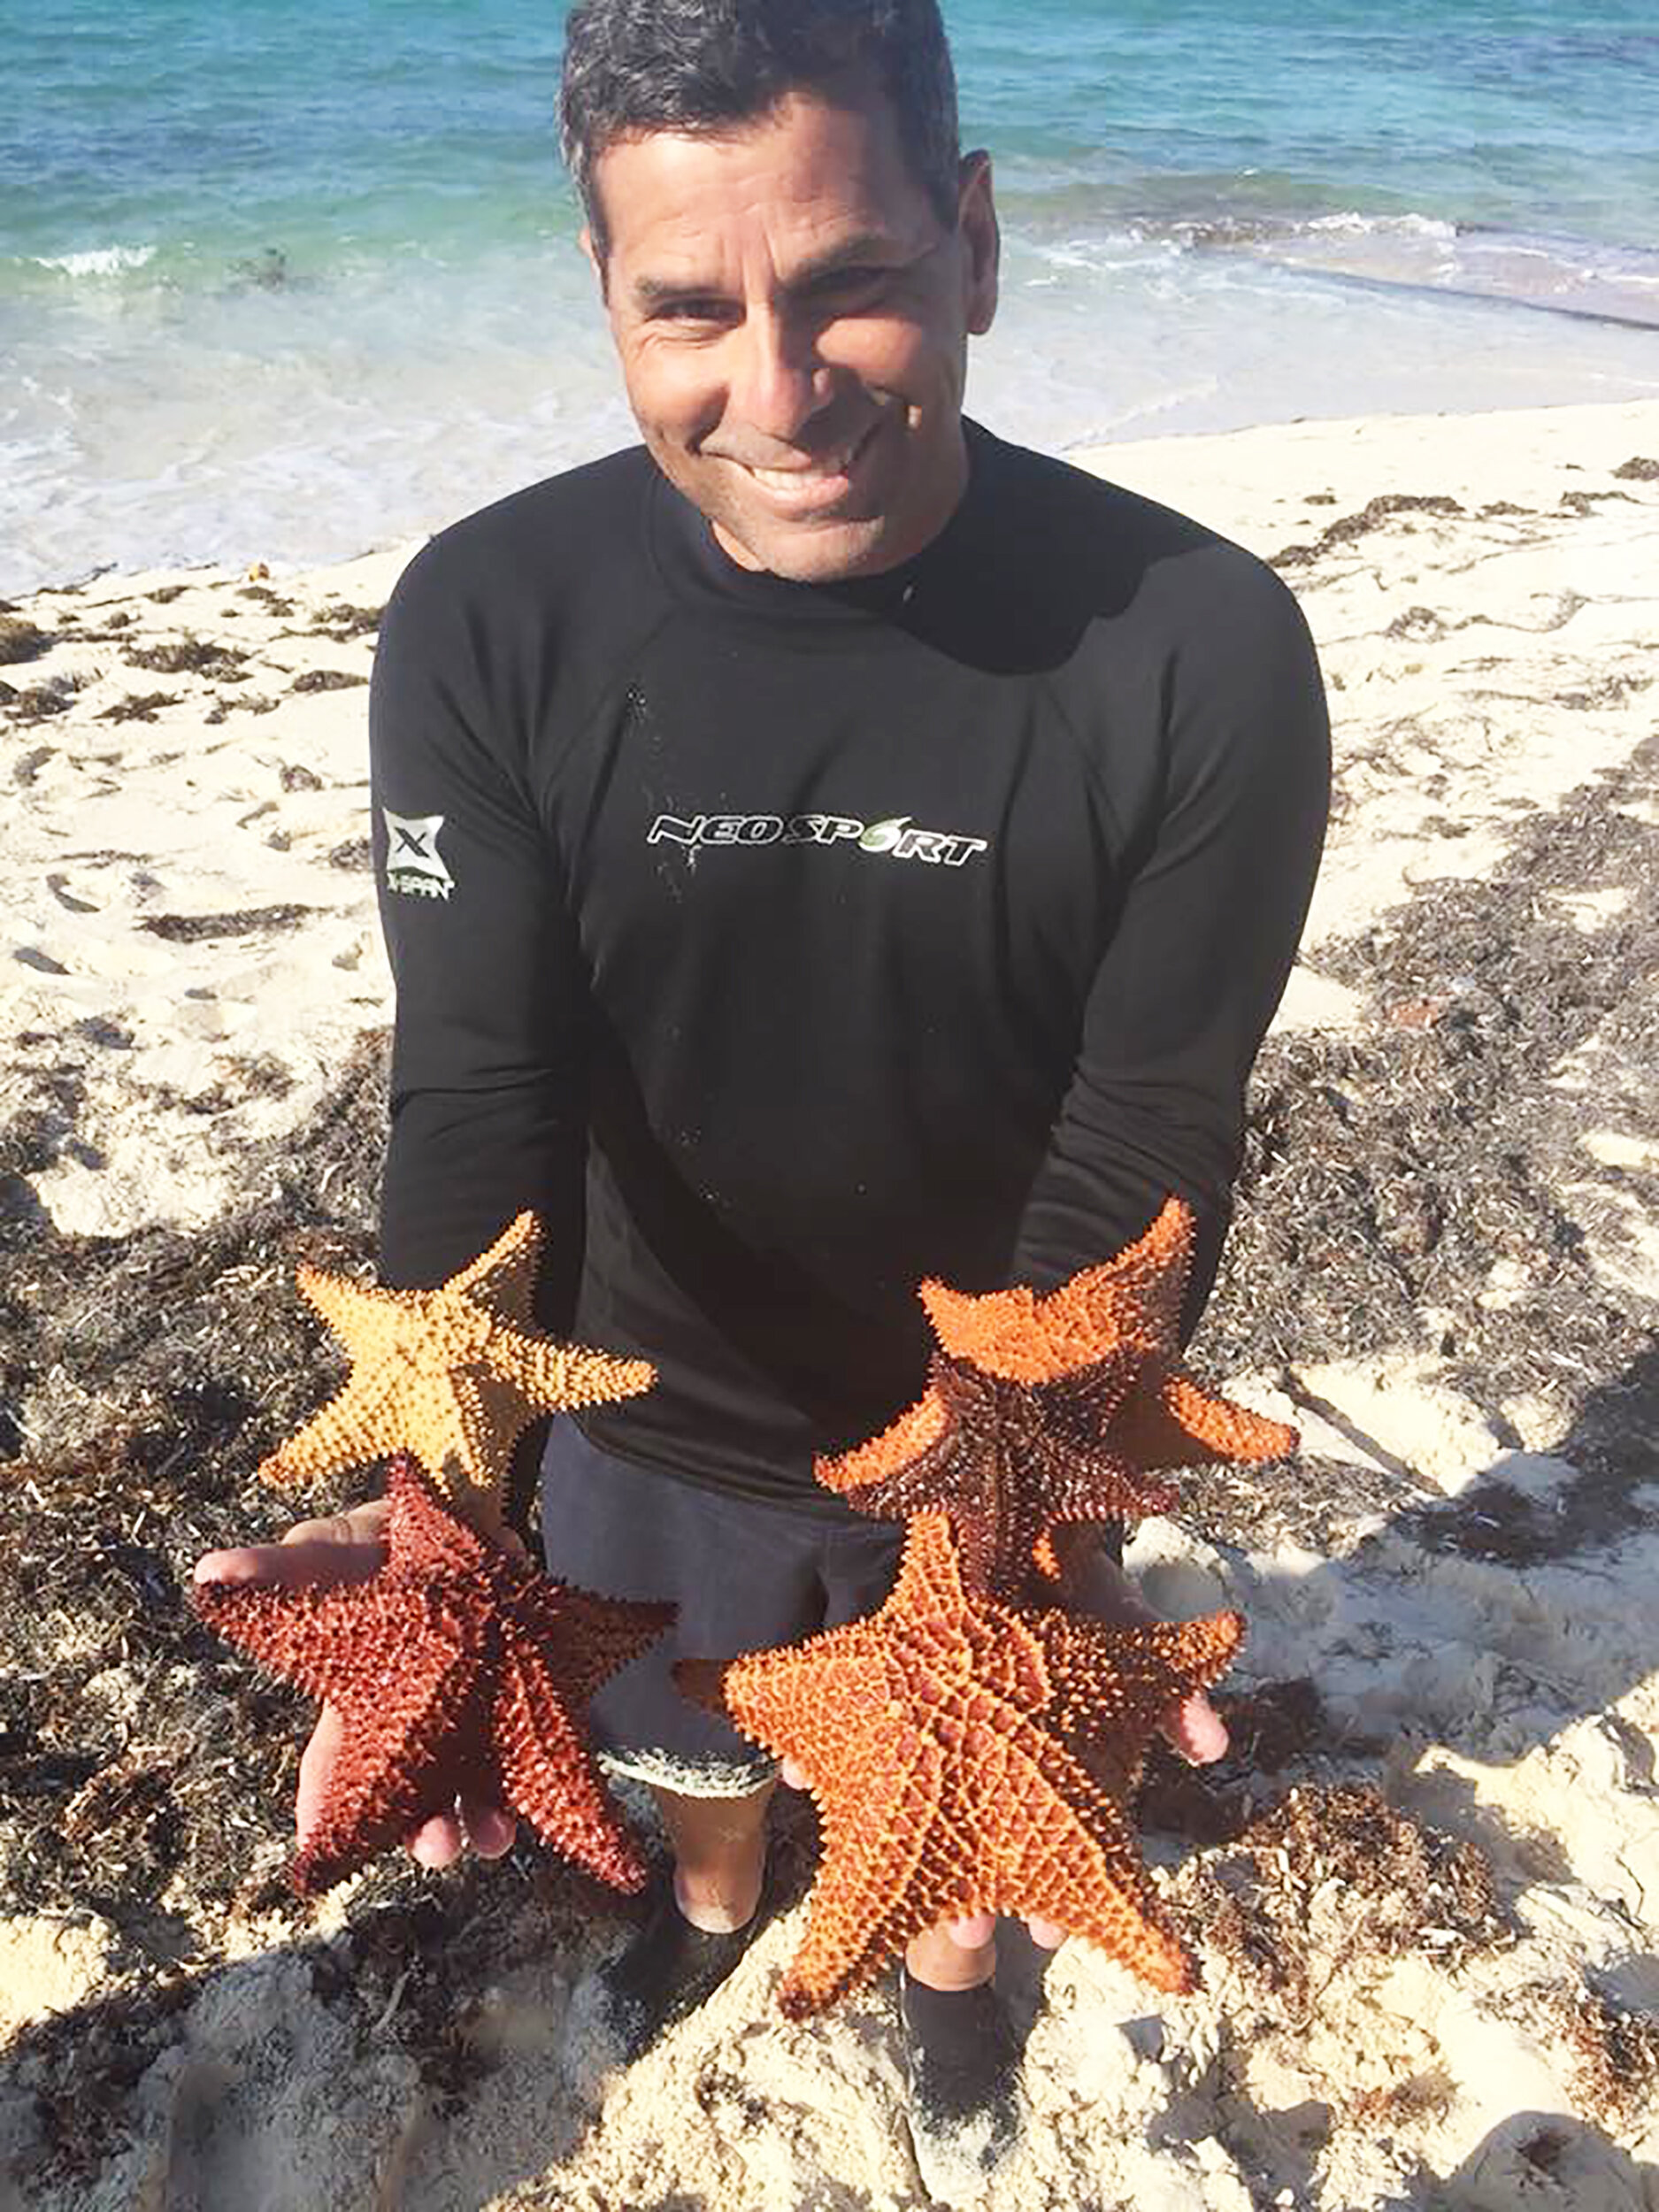 Biology professor Isidro Bosch (pictured above) displays his love for the ocean, holding a series of starfish in his hands. Bosch also has a passion for Antarctica, where he has conducted research and taken students on study abroad trips (courtesy of Isidro Bosch).